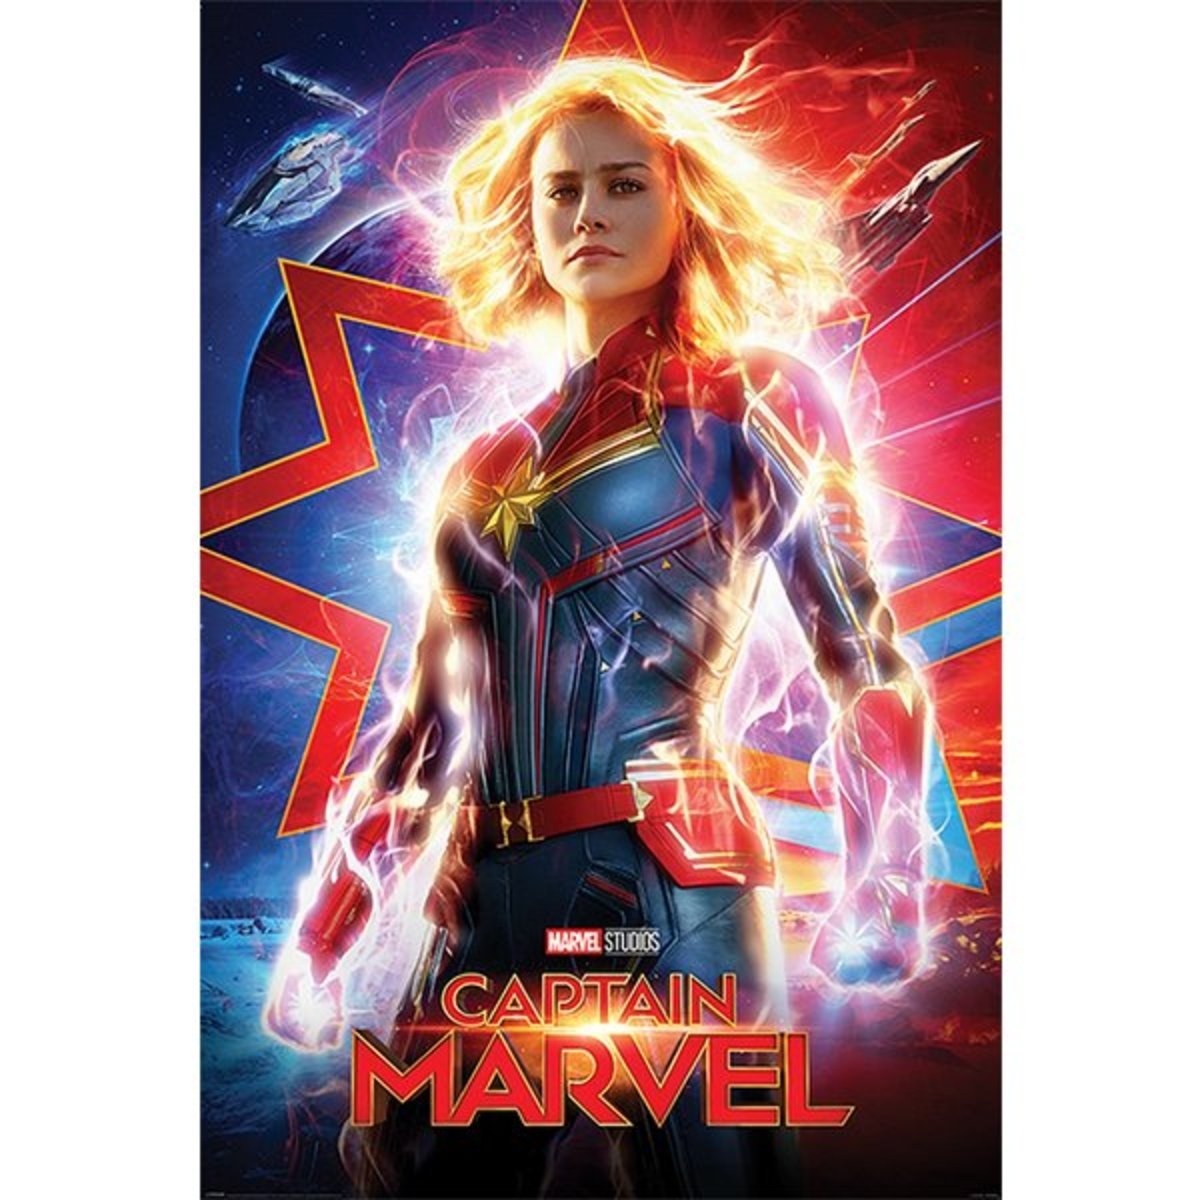 'Captain Marvel' (2019) - Film Review